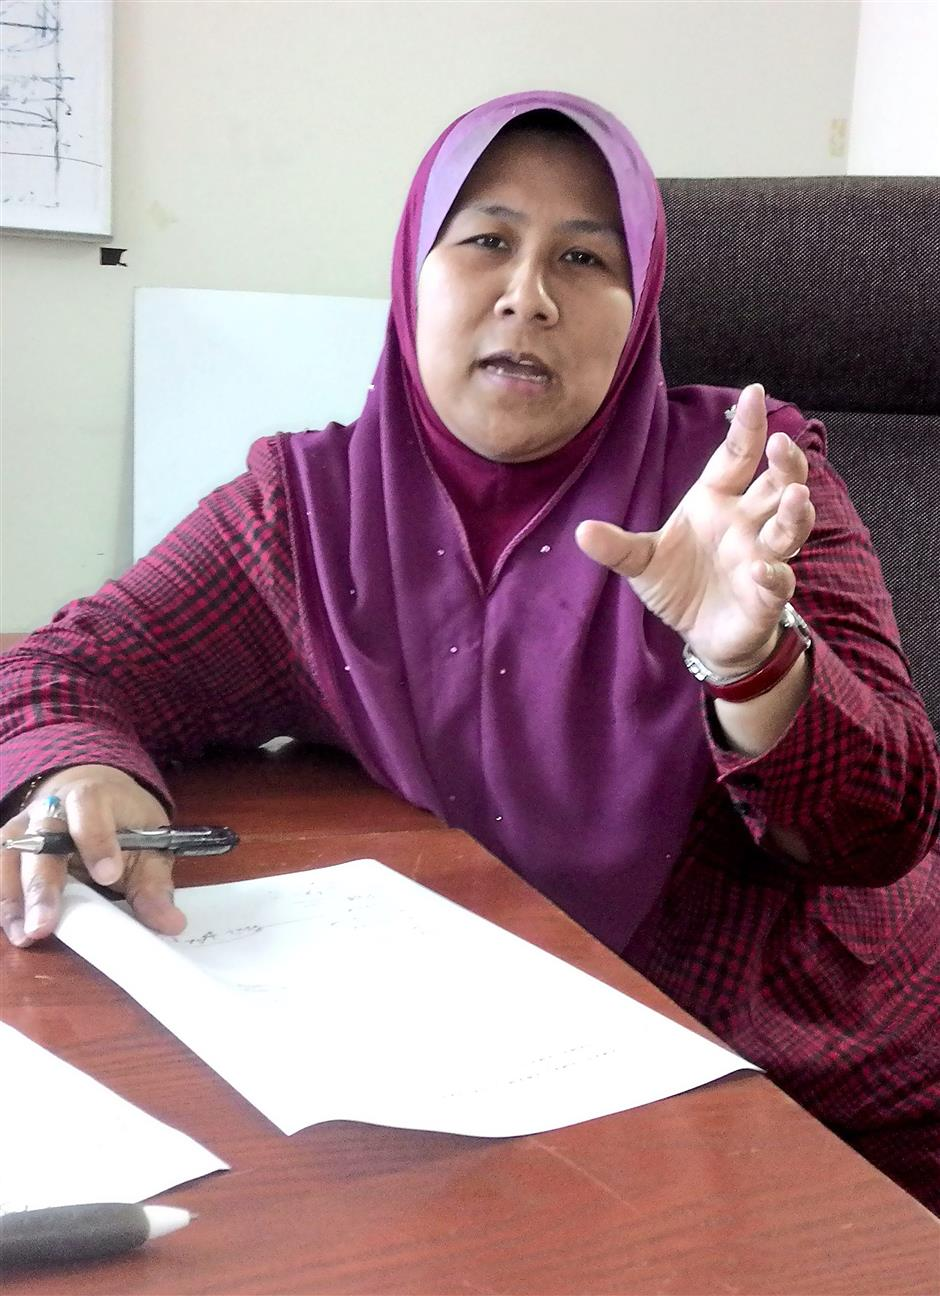 Dbkl Landscape and Recreation deputy director Puteri Khairul Fathiah Fahimudin is pushing for more private companies to adopt parks in the city.